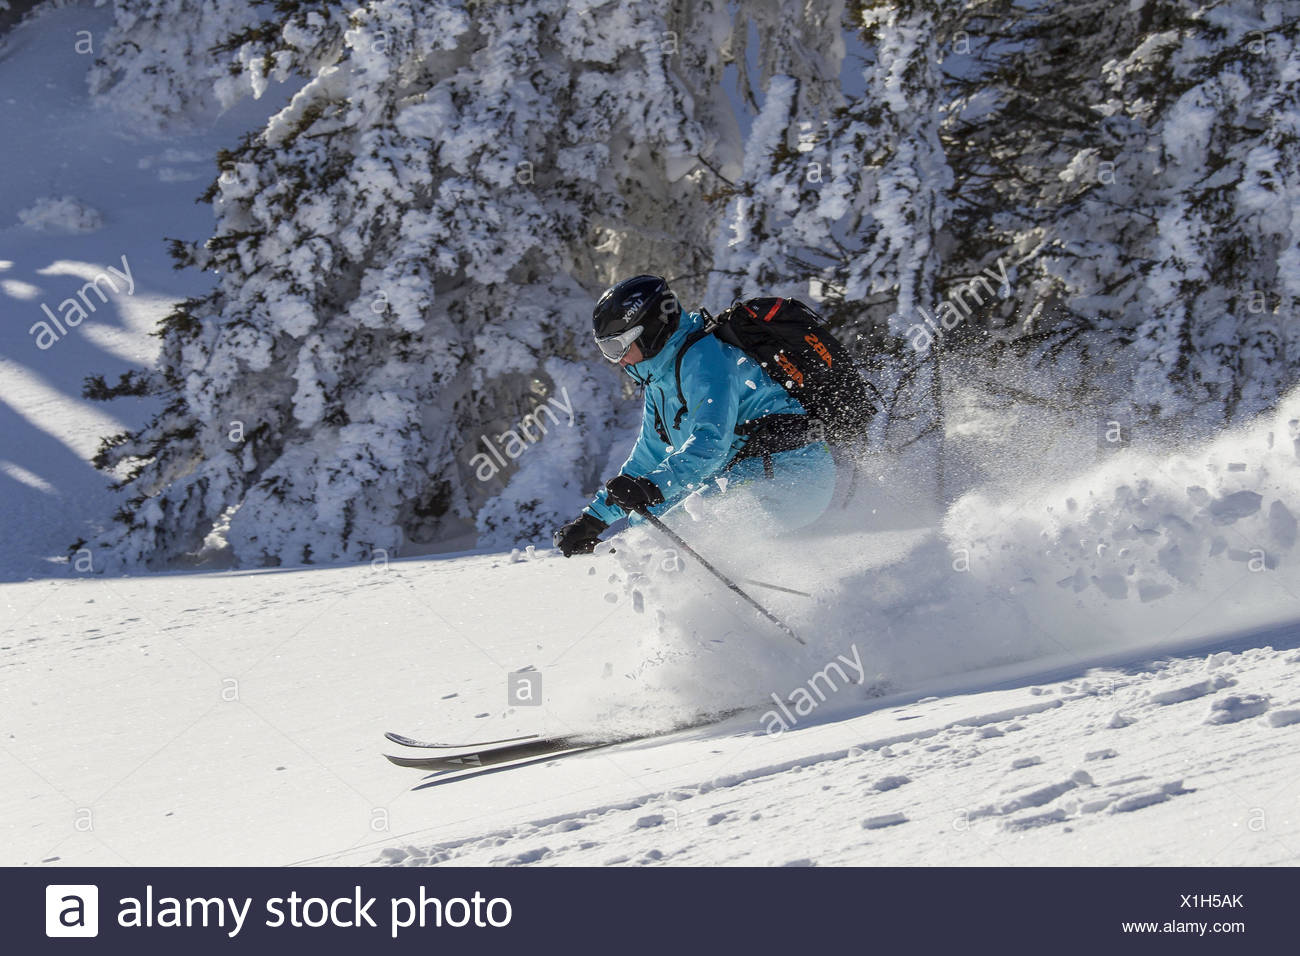 Skier with backpack, going downhill in front of snow-covered trees, - Stock Image